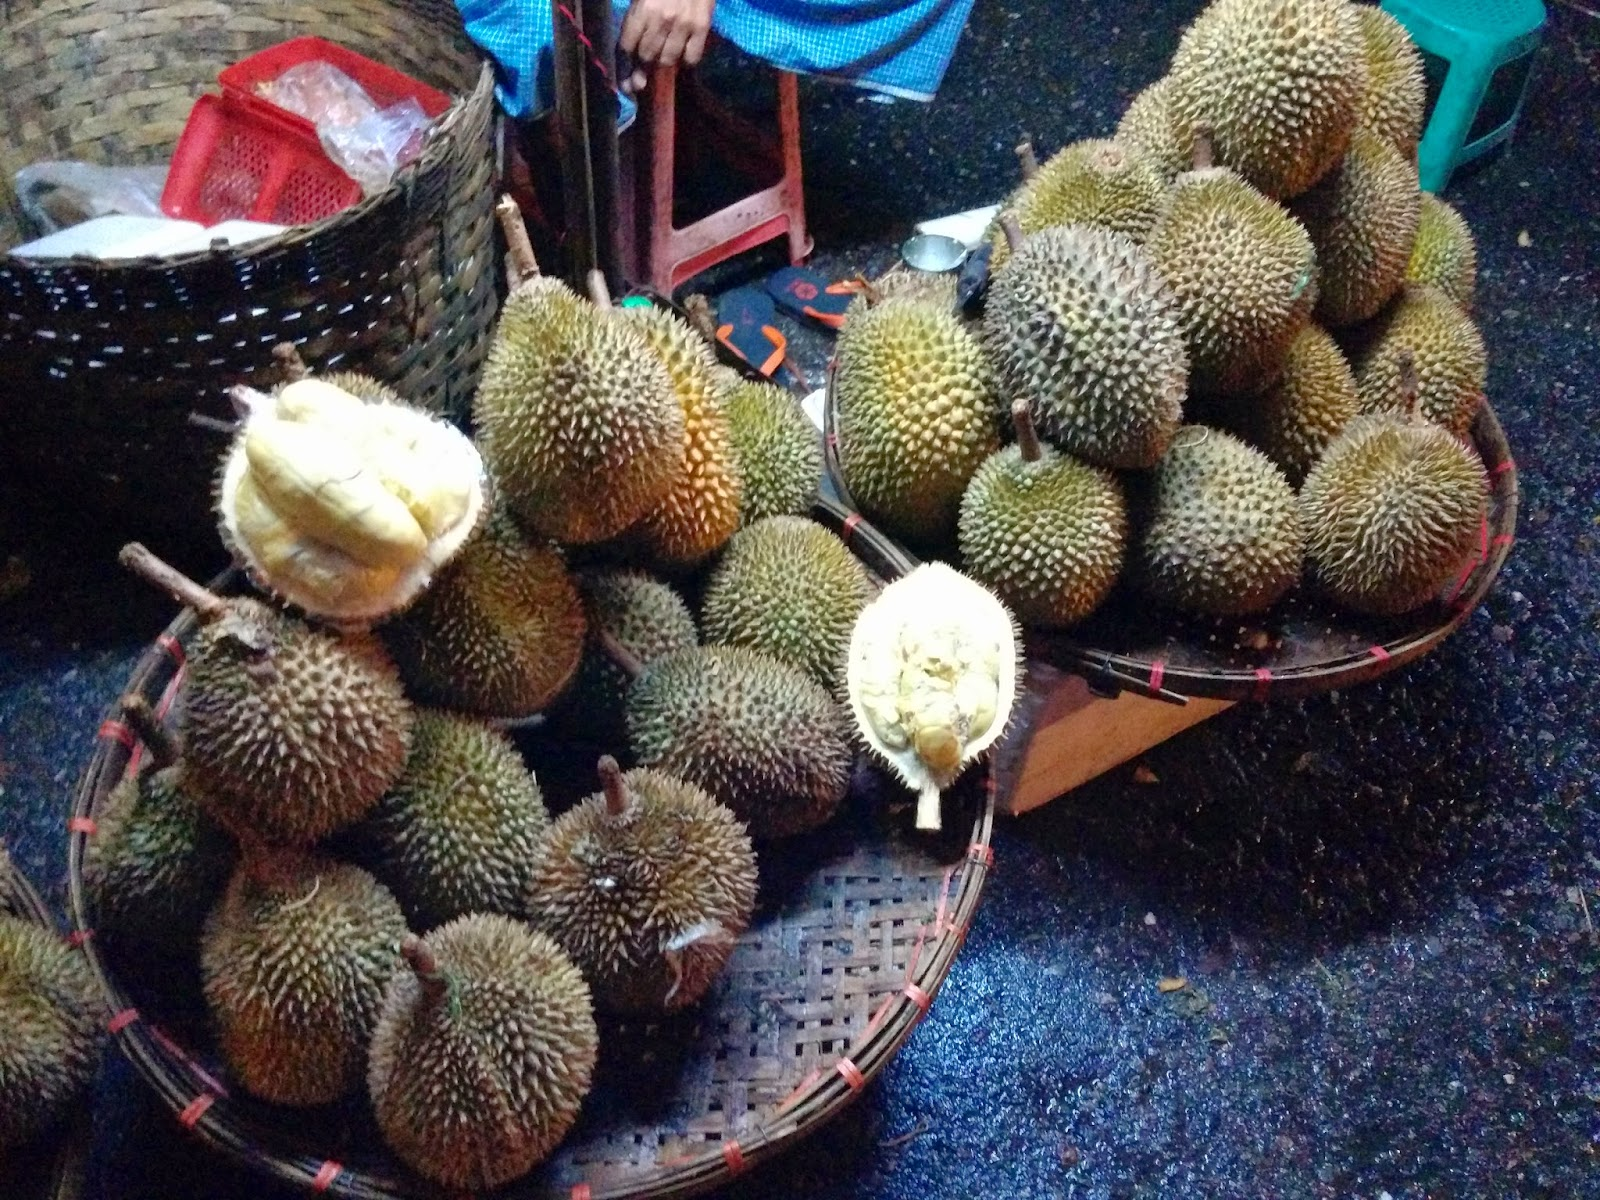 durian info durian seasons in durian production areas. Black Bedroom Furniture Sets. Home Design Ideas